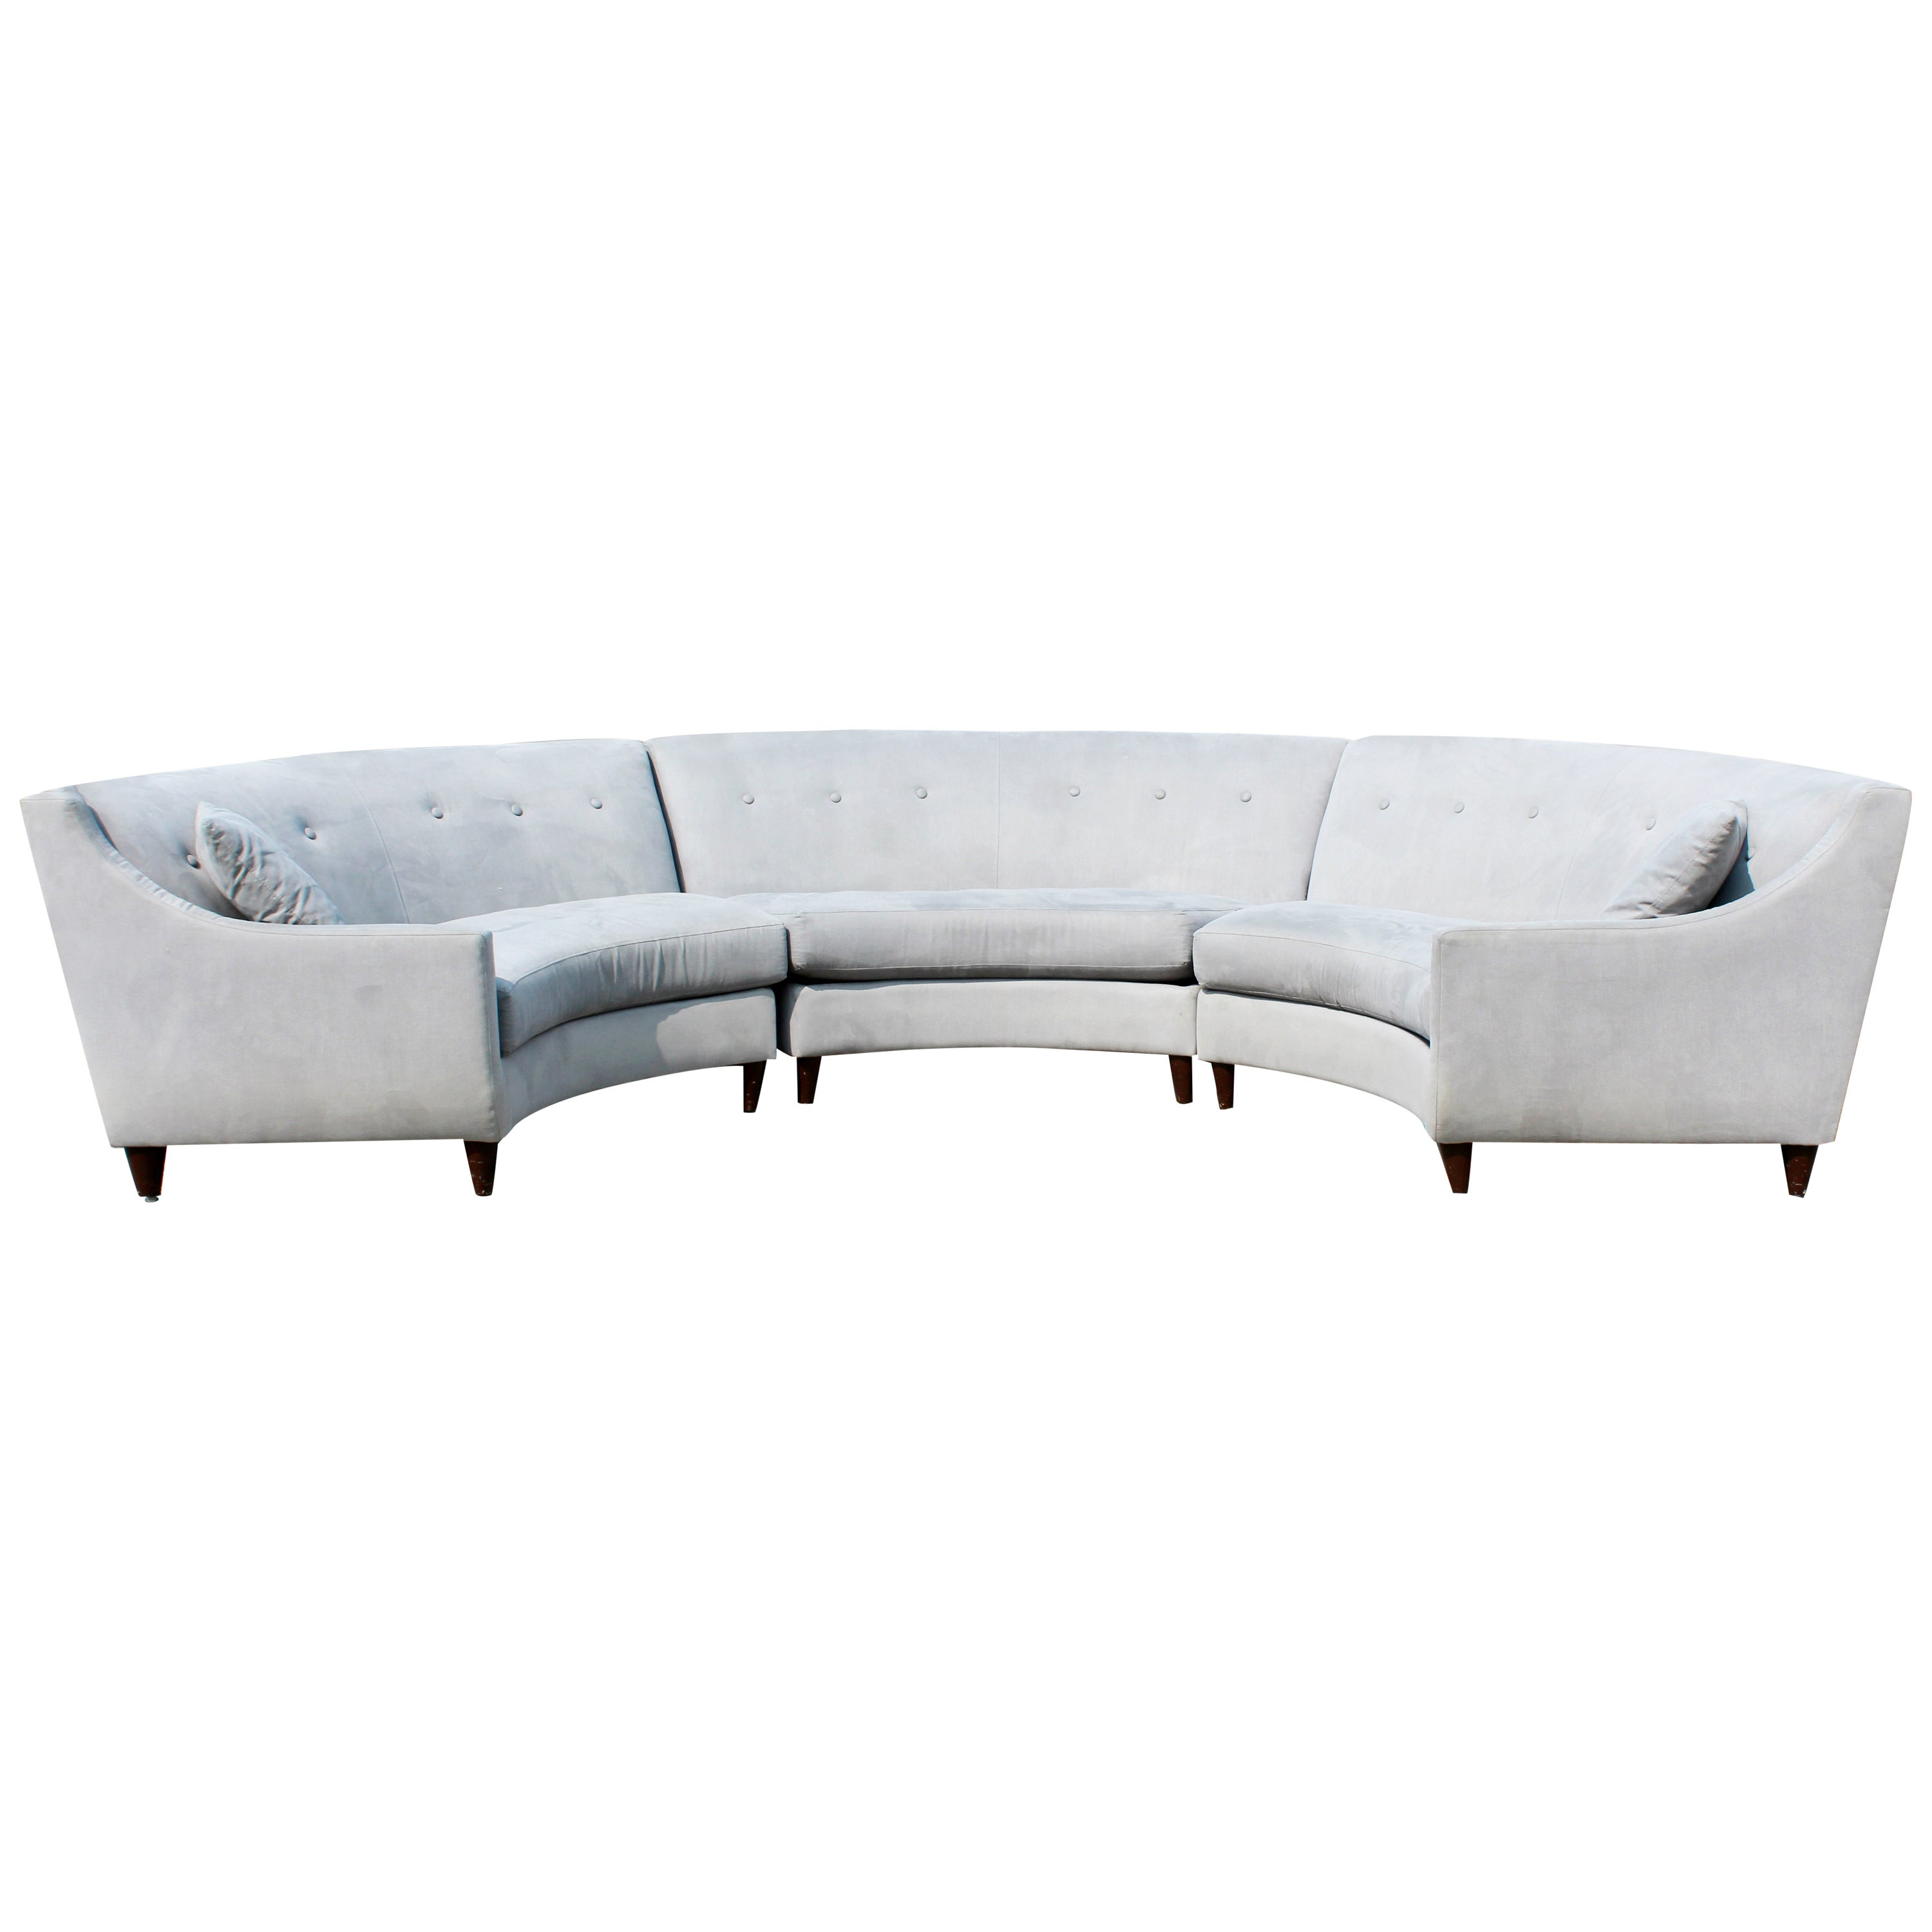 Contemporary Modernist 3-Piece High Back Curved Sectional Sofa Adler Style